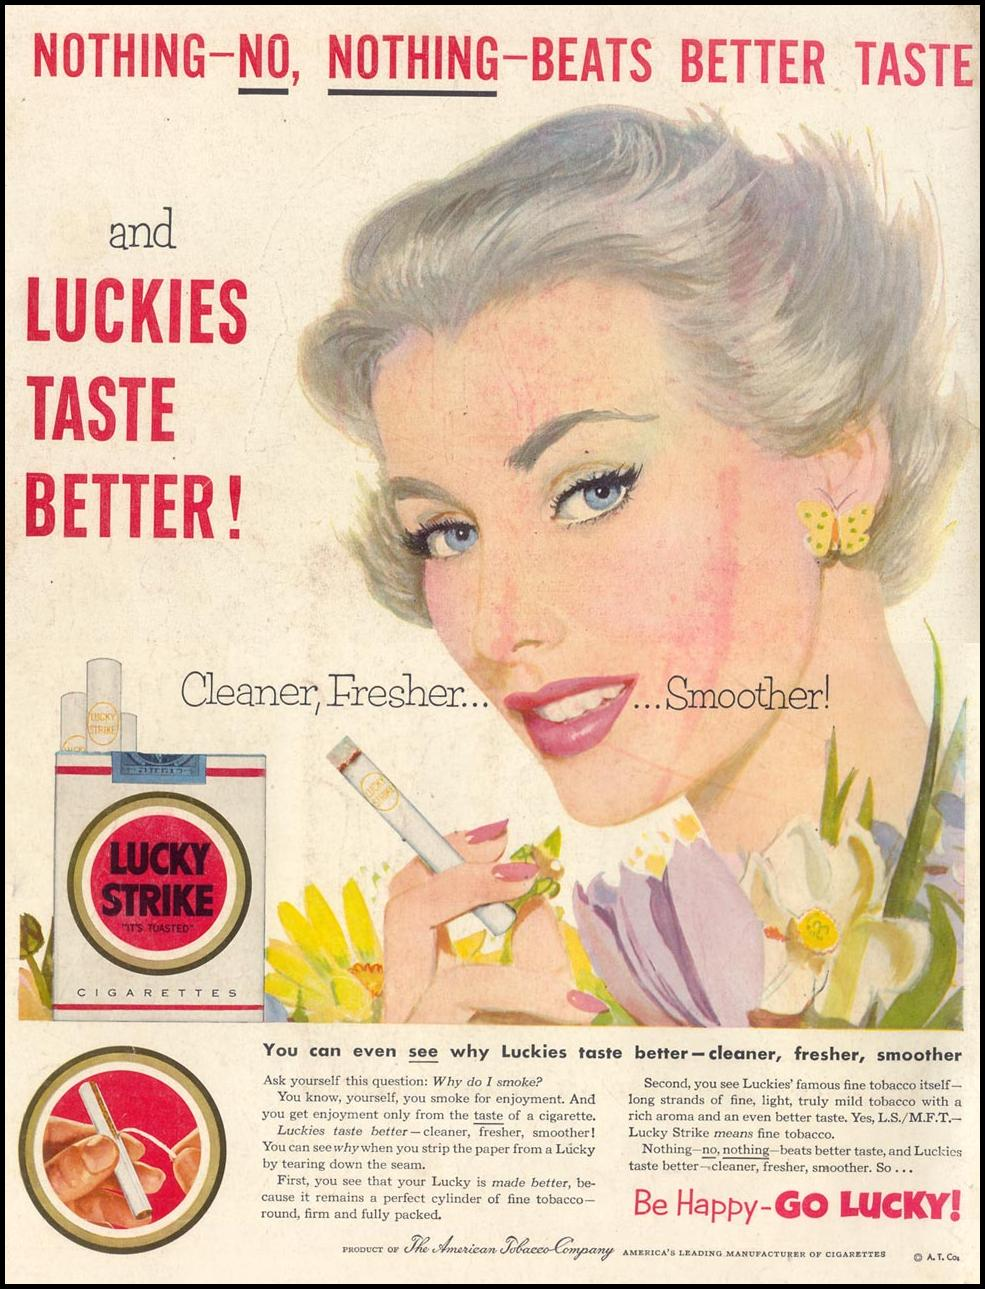 LUCKY STRIKE CIGARETTES LIFE 04/13/1953 BACK COVER